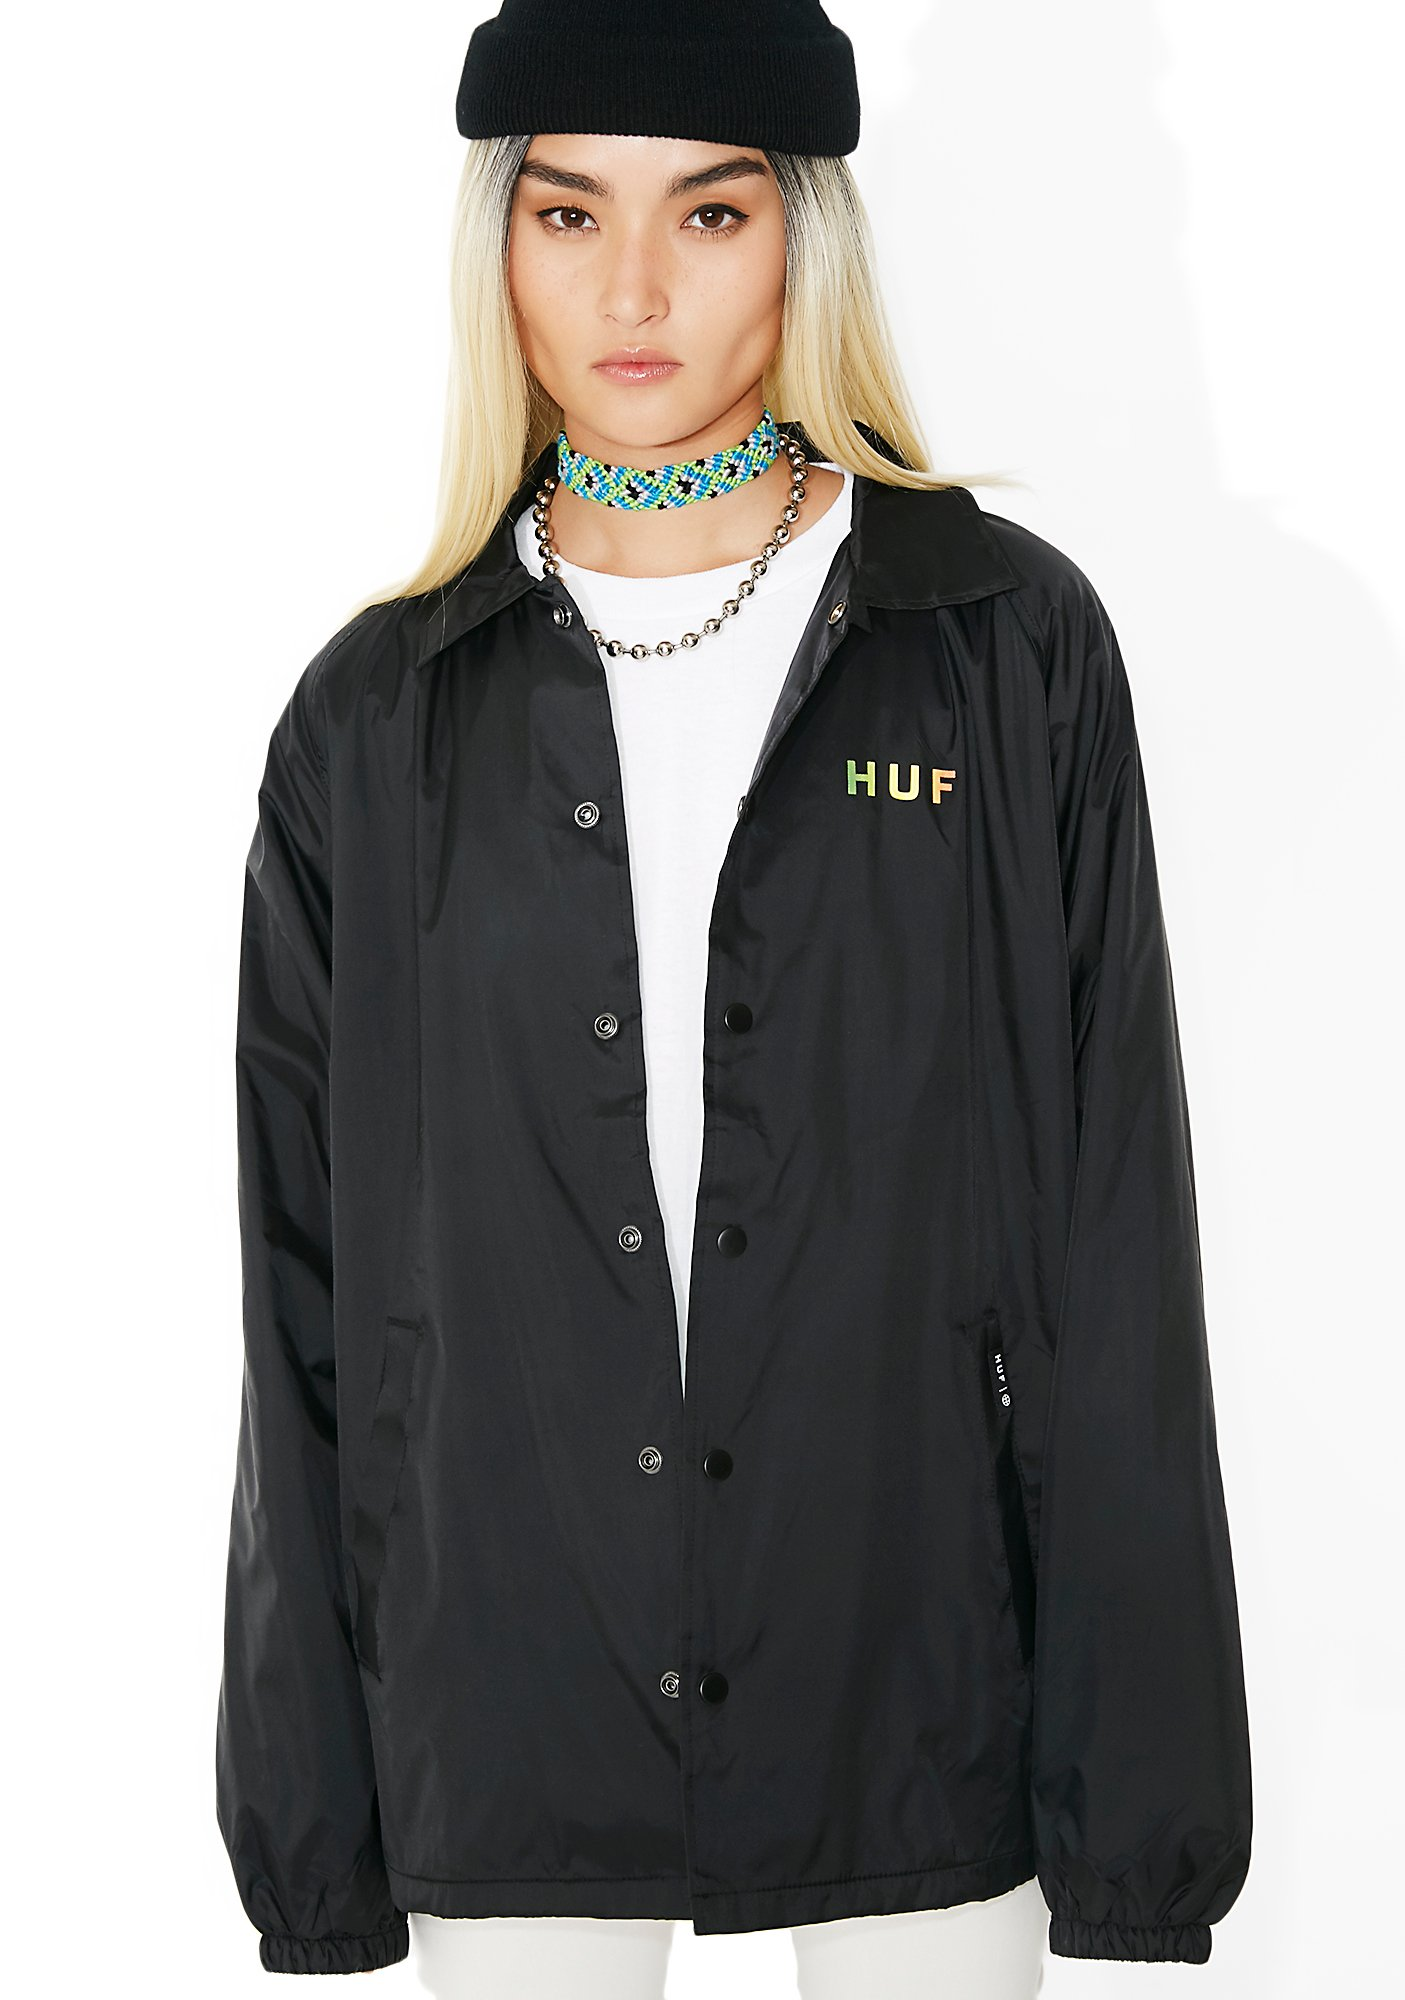 HUF Gradient OG Coaches Jacket